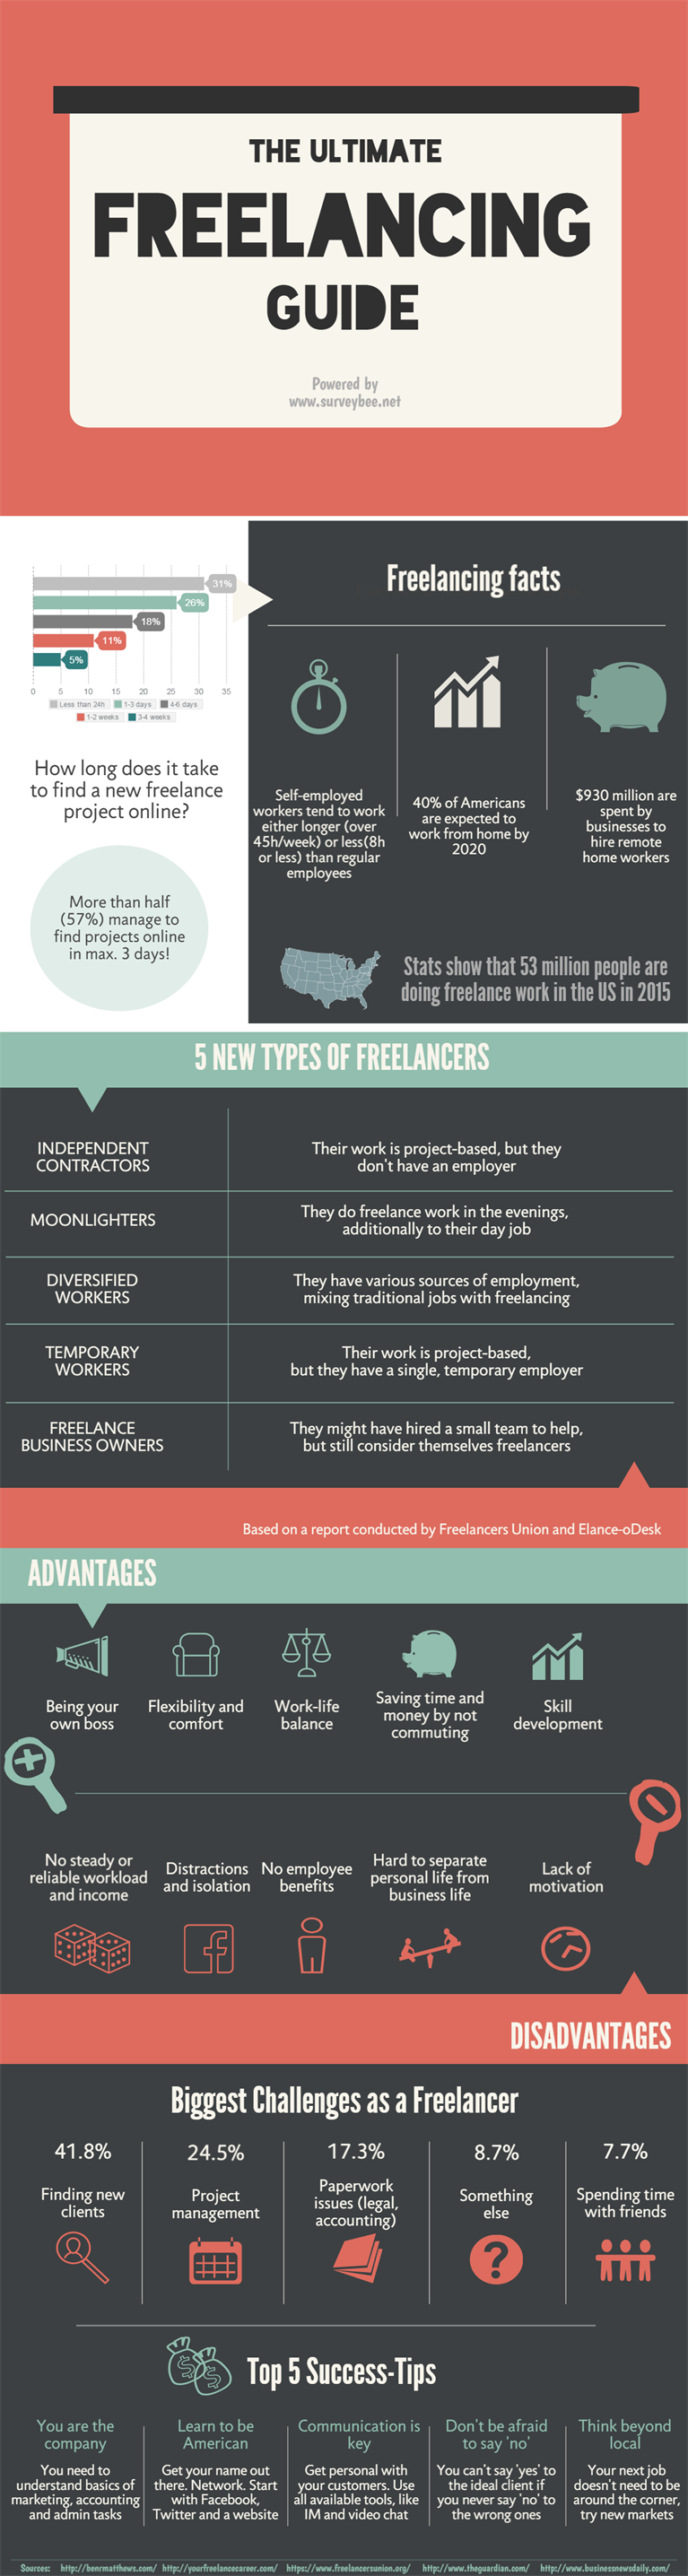 The Ultimate Freelancing Guide